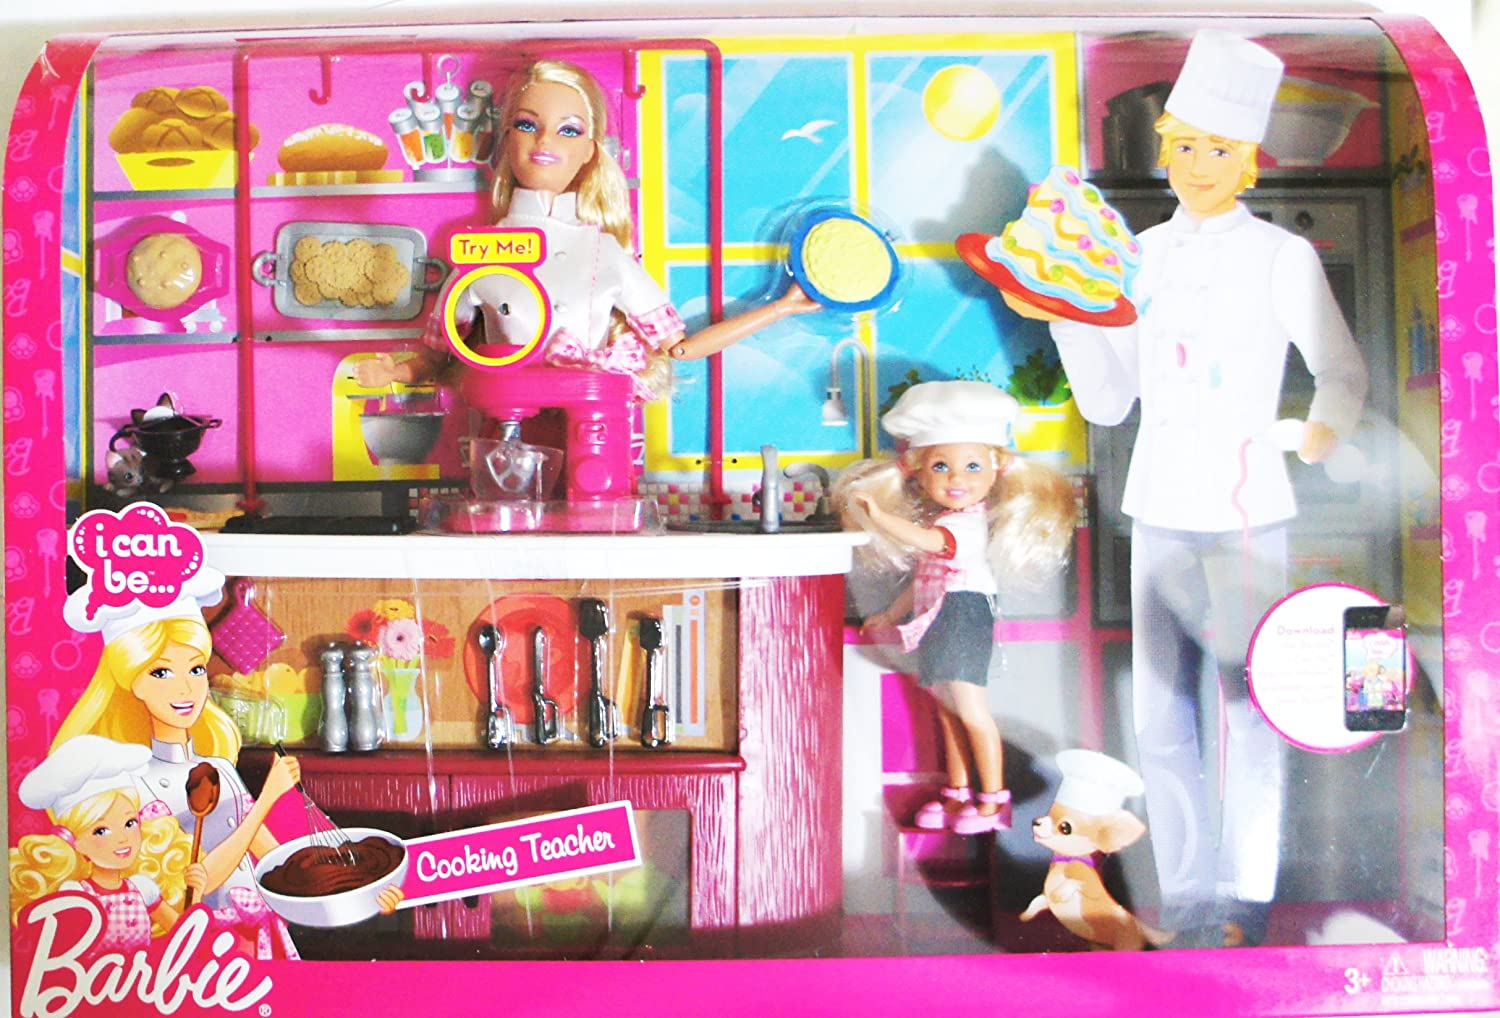 Barbie I can be Cooking Teacher Playset